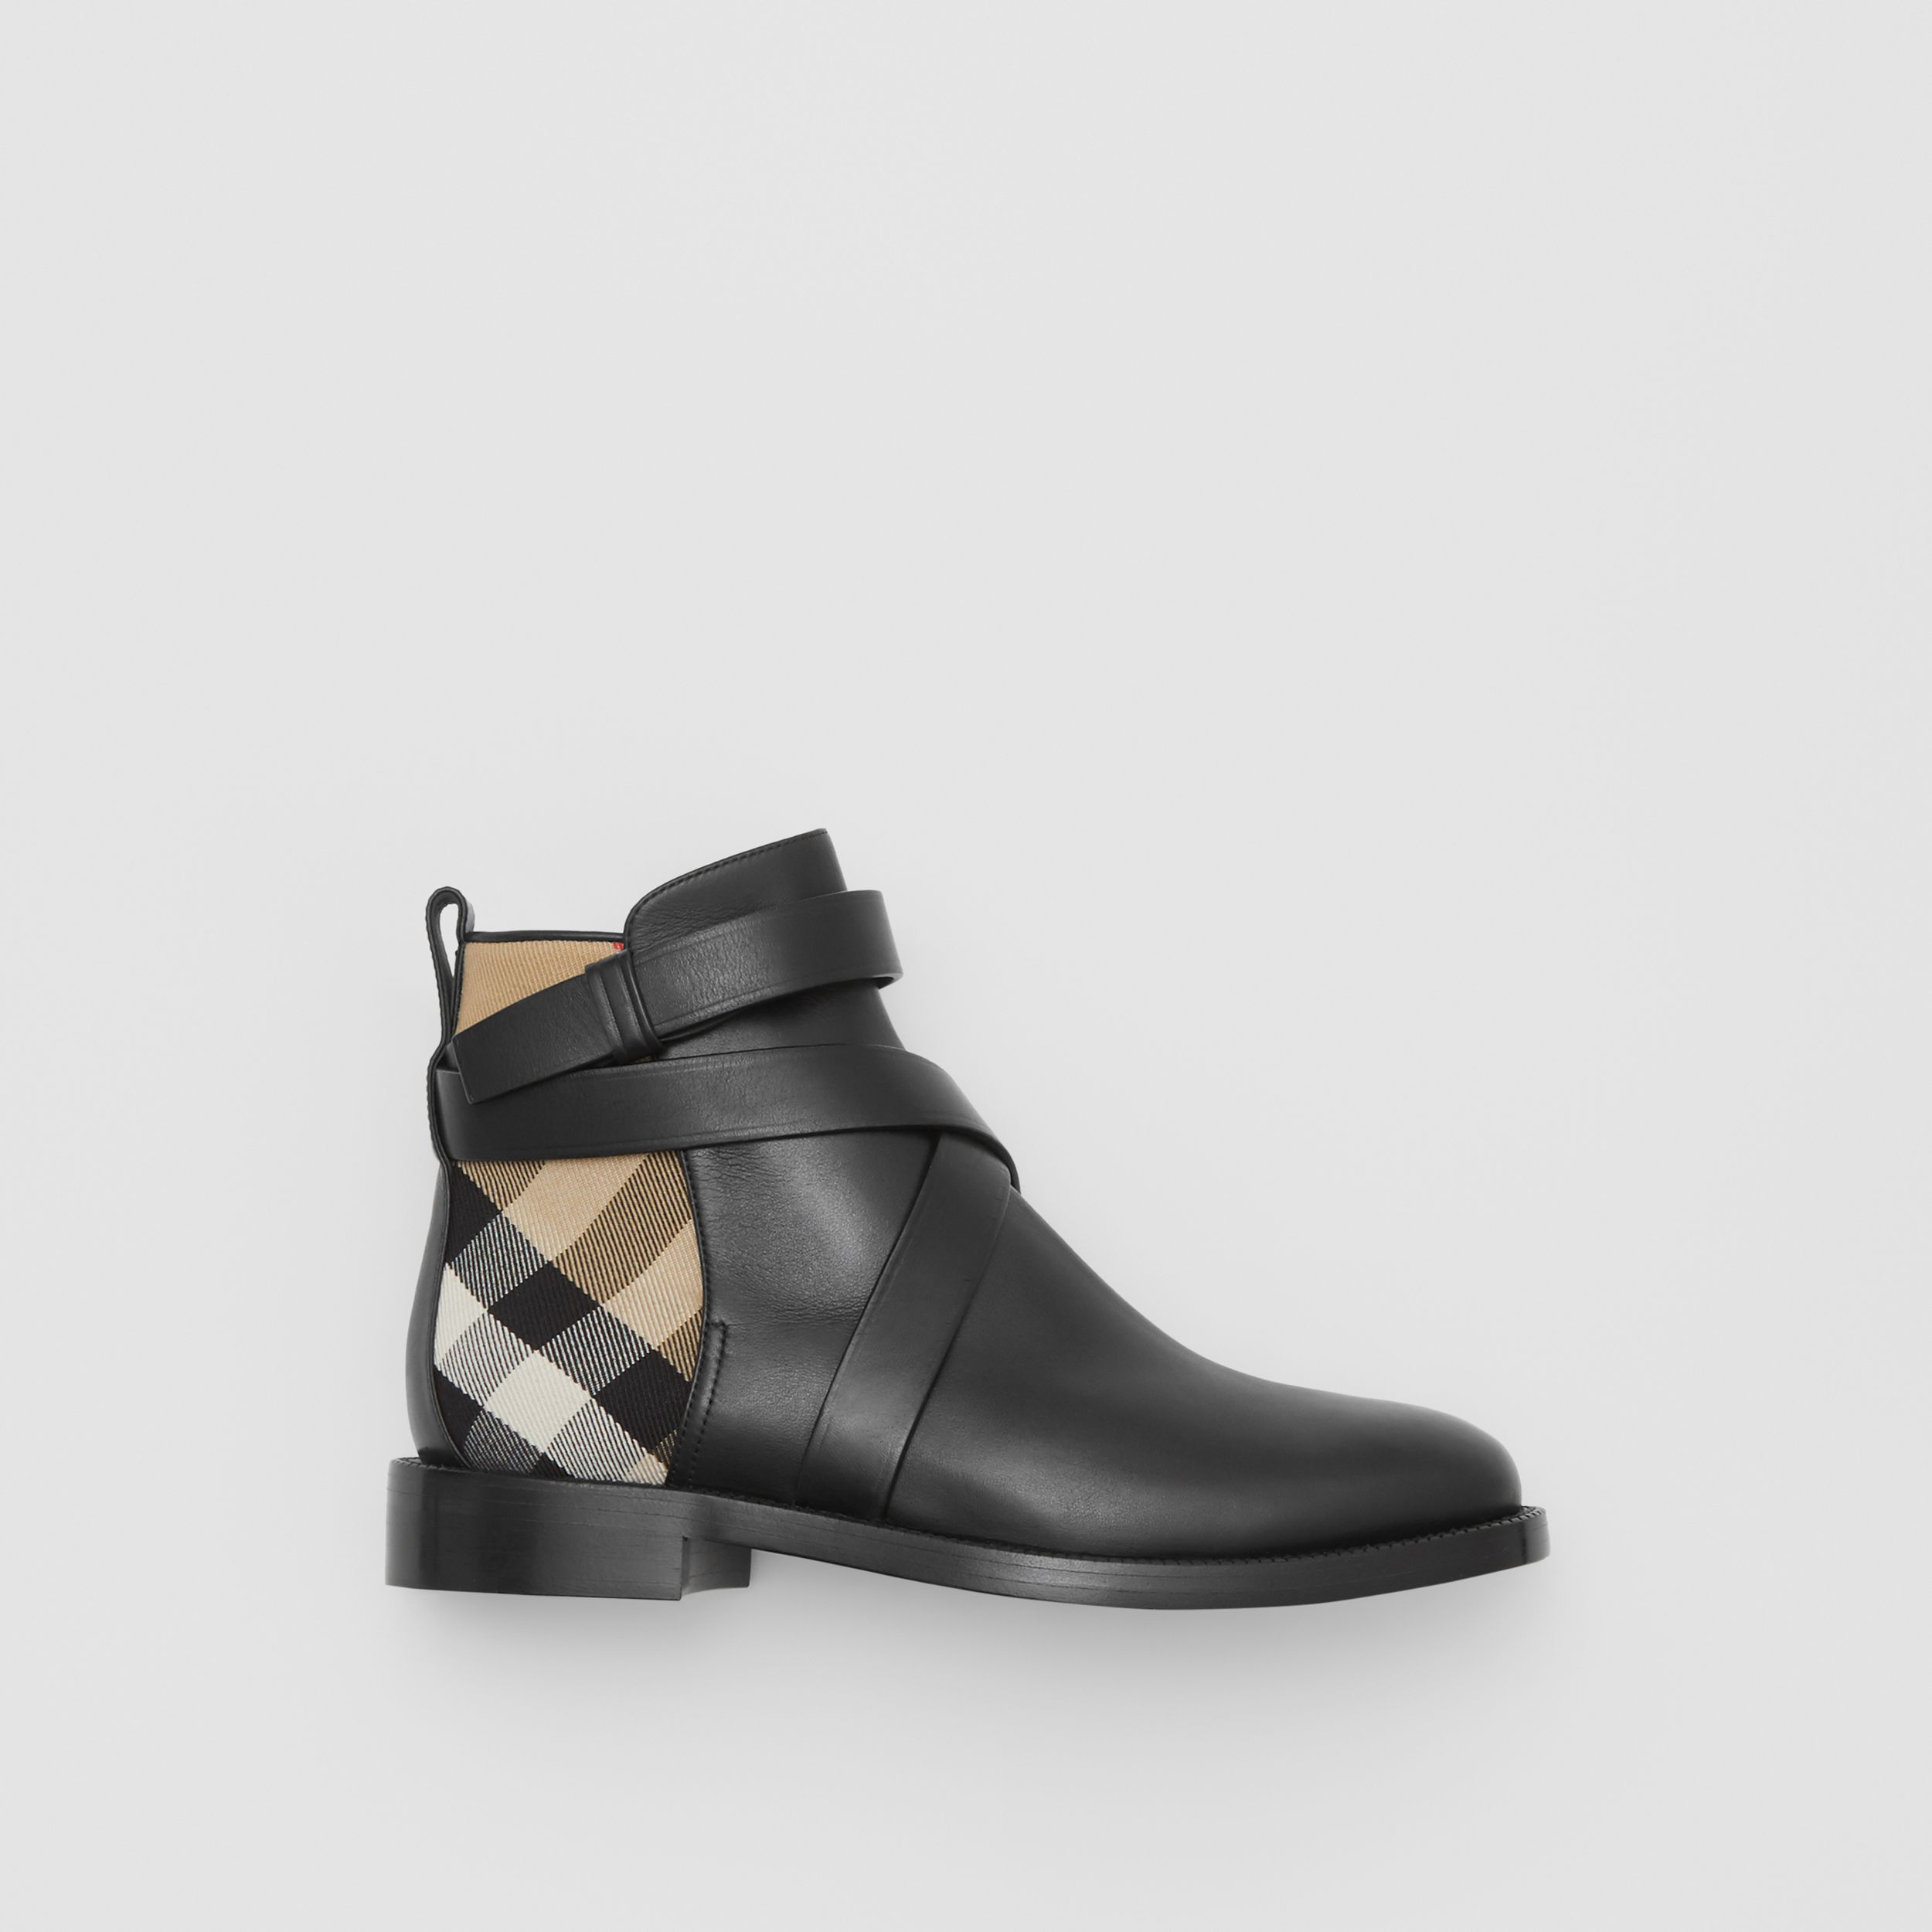 House Check and Leather Ankle Boots in Black/archive Beige - Women | Burberry United States - 1